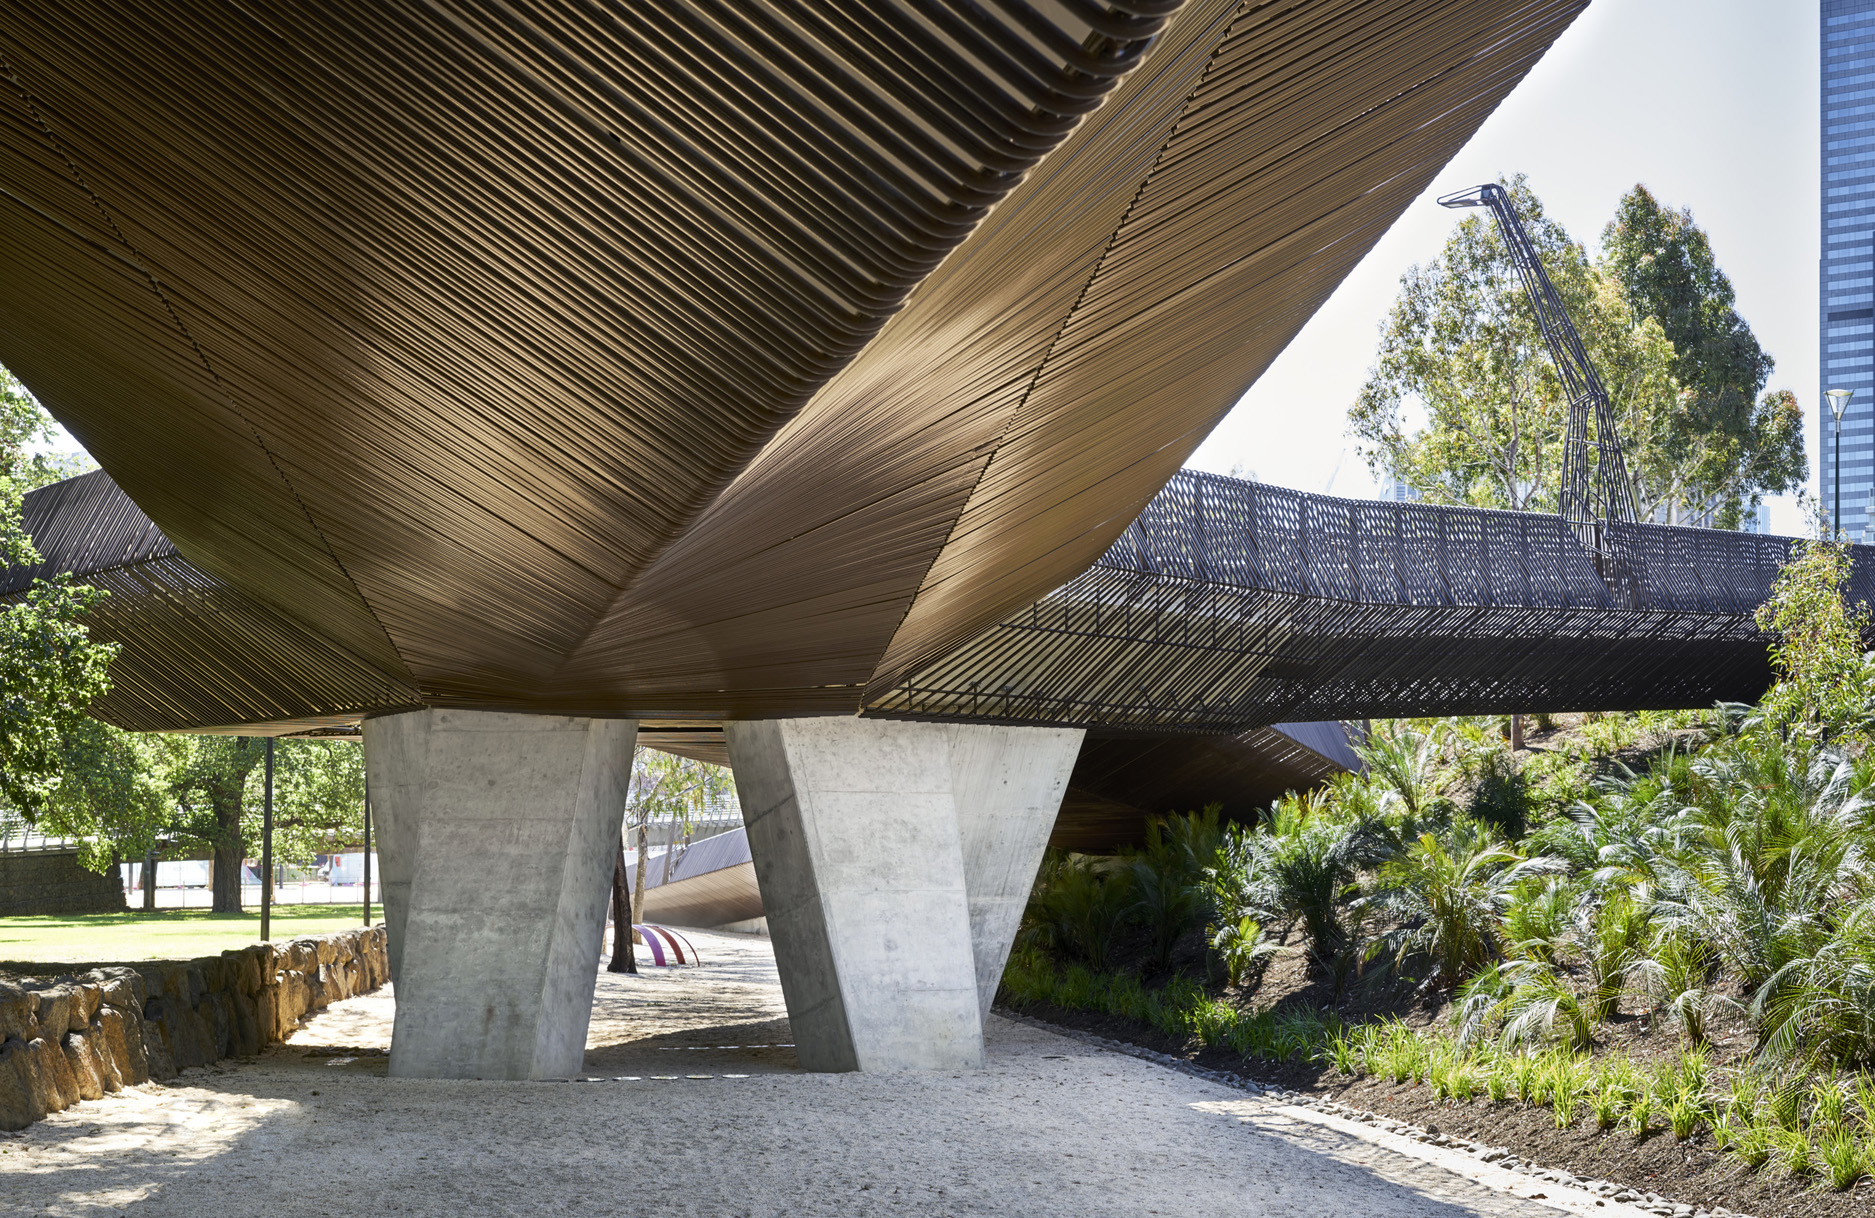 The recently opened Tanderrum Bridge by JWA + NADAAA (Photo: Kristoffer Paulsen)